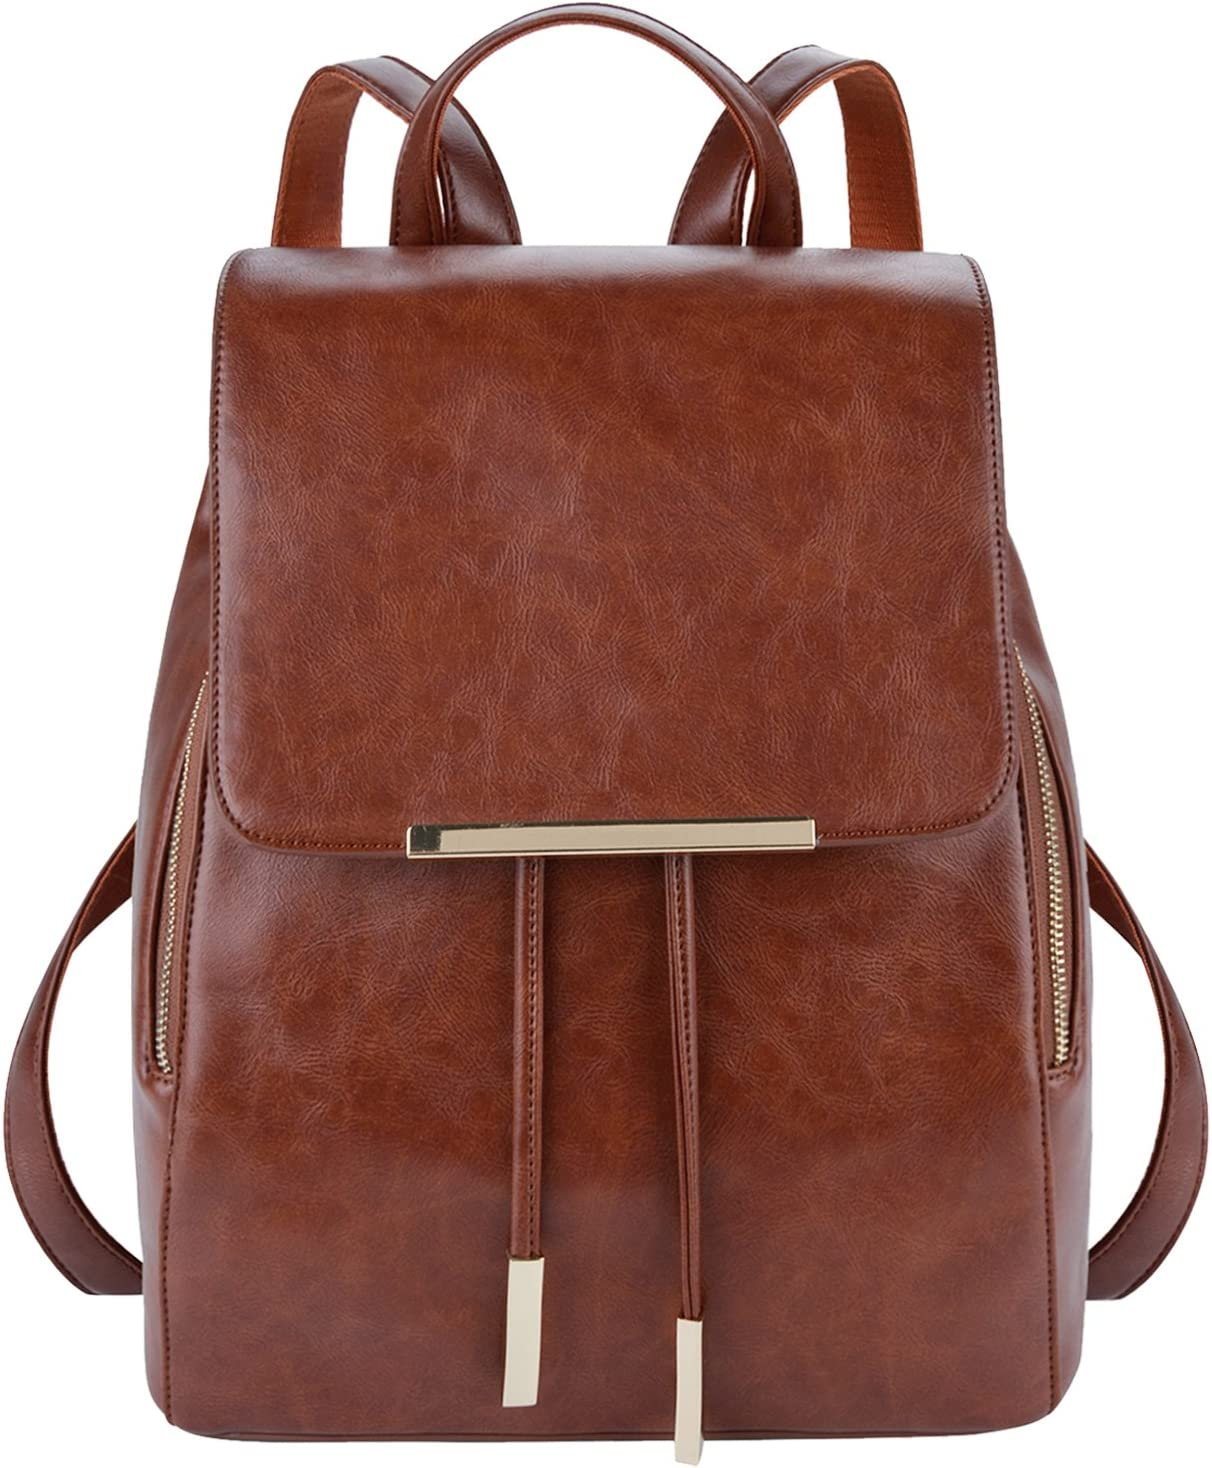 COOFIT Leather Backpack Purse Casual Daypack Backpacks for women Brown(Synthetic Leather)